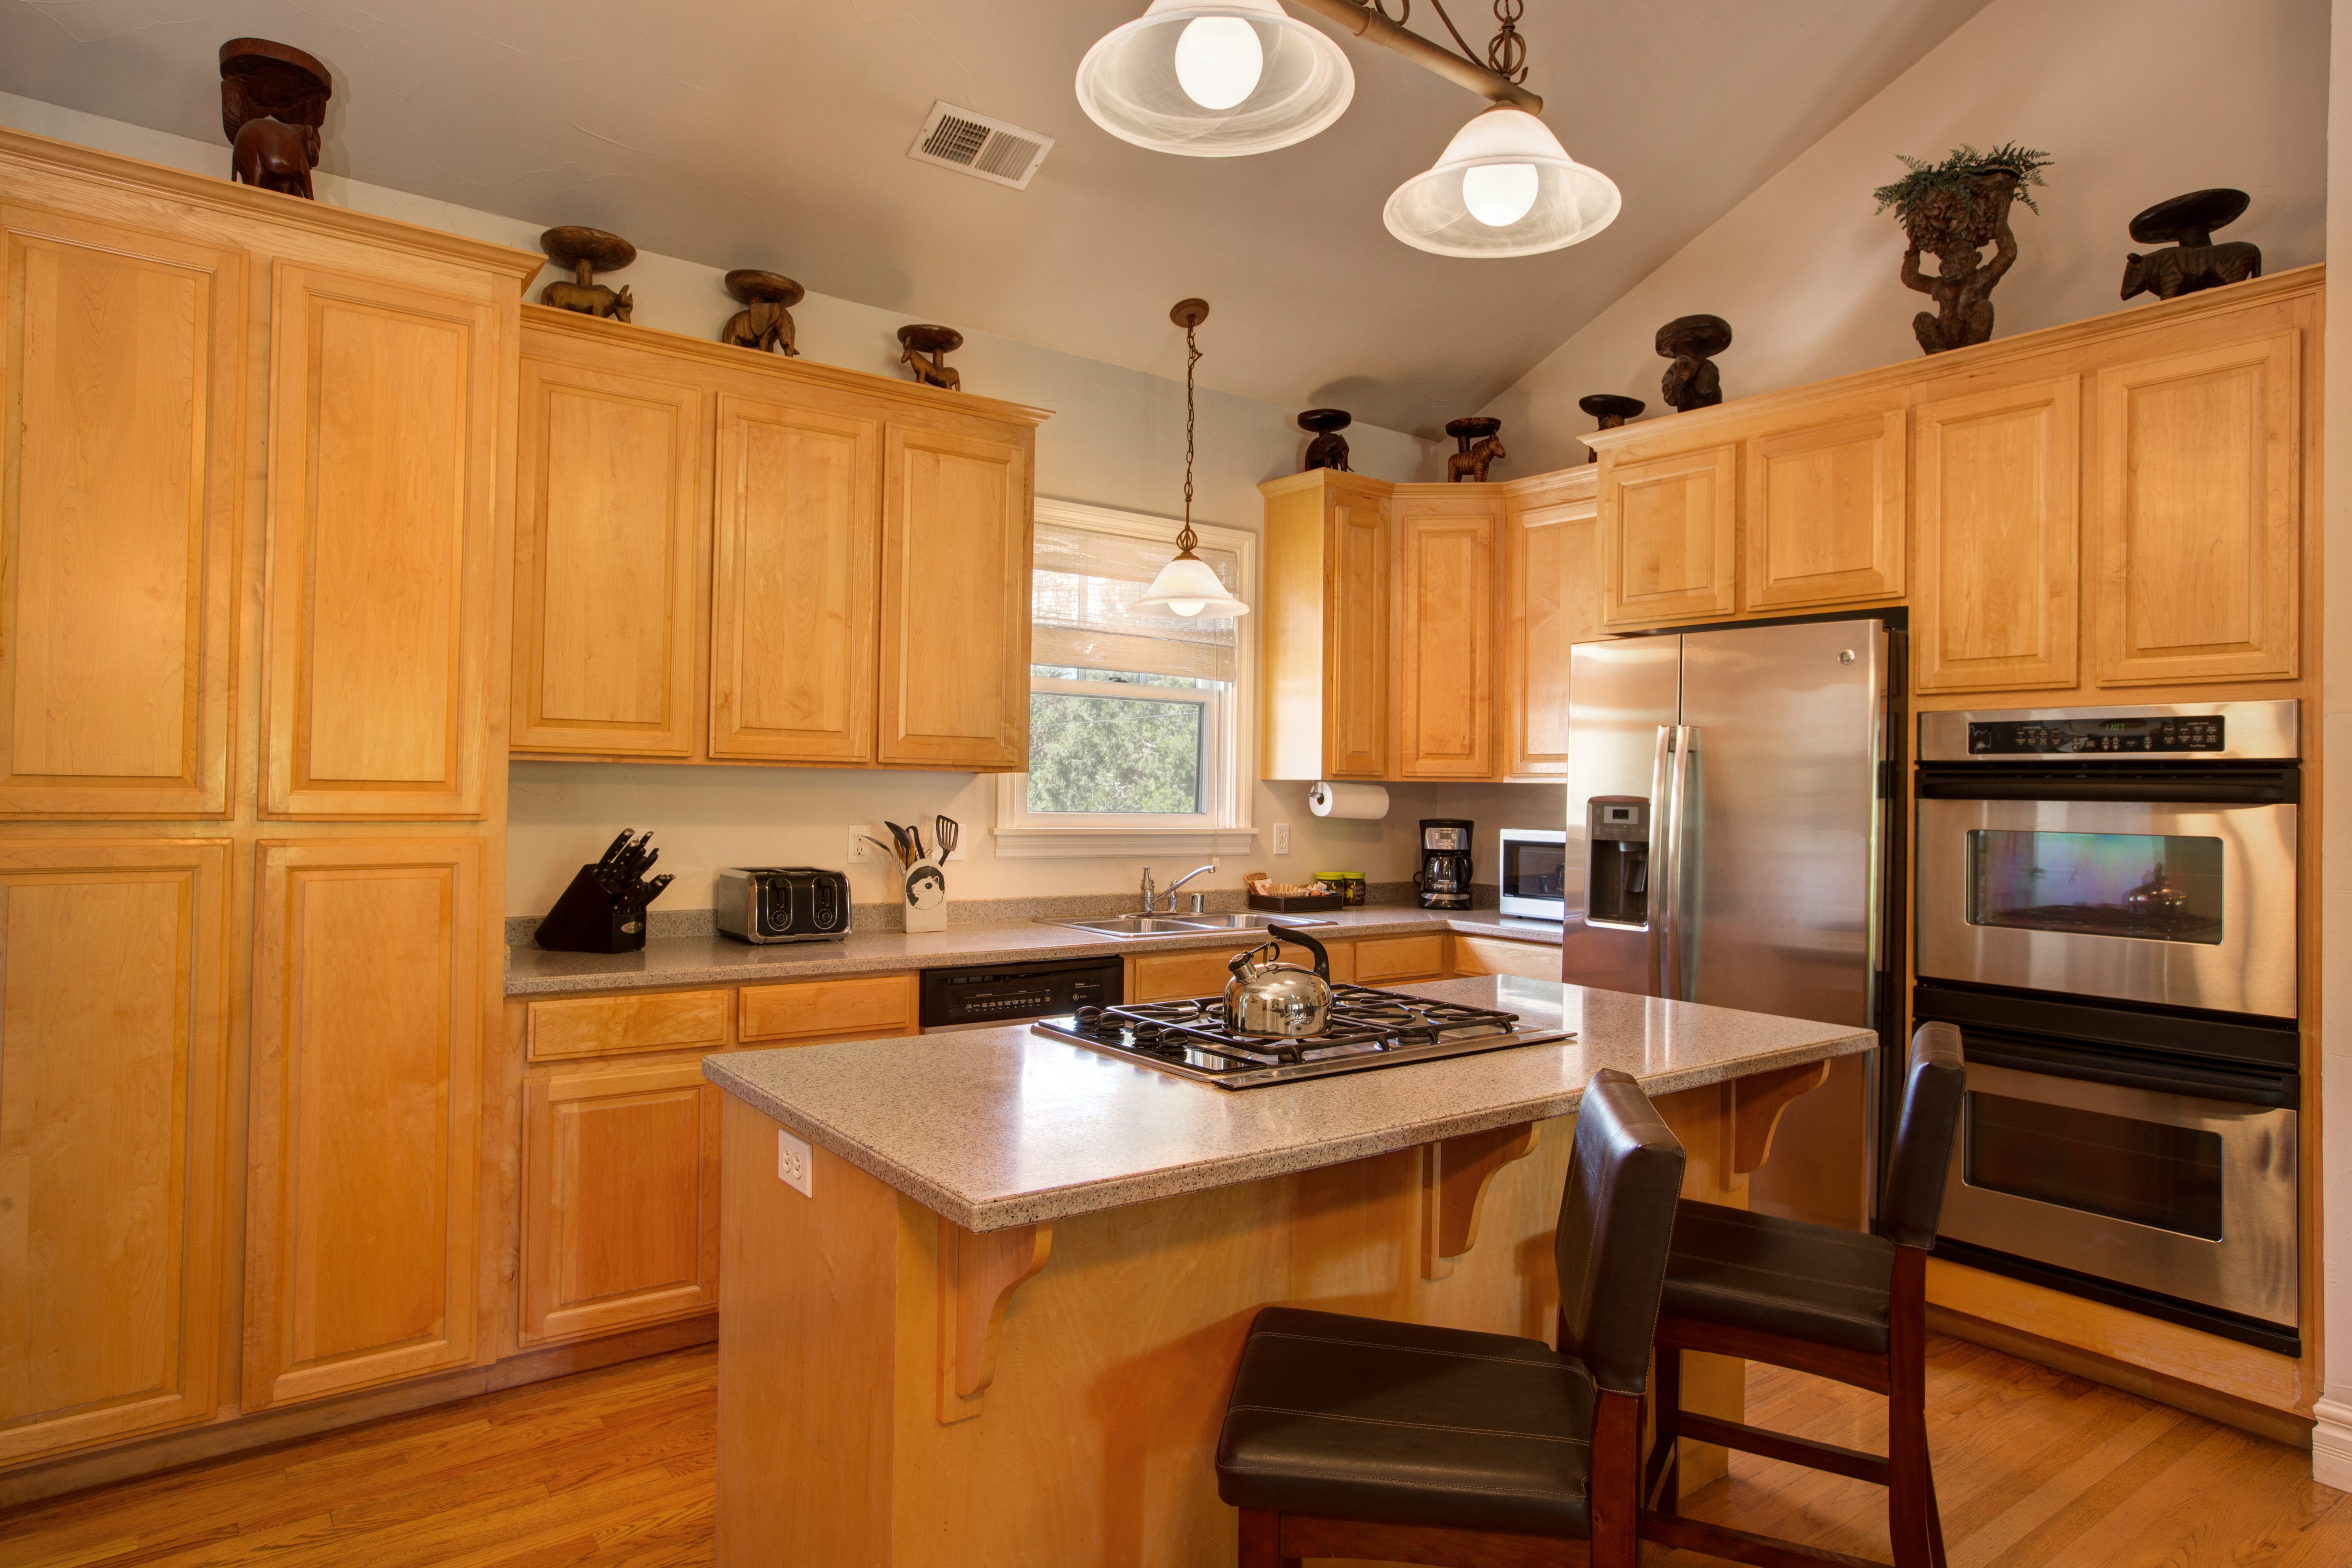 Vaulted kitchen with peach walls, shiny stone island countertop with smooth top electric stove, windows and doors with roman shades